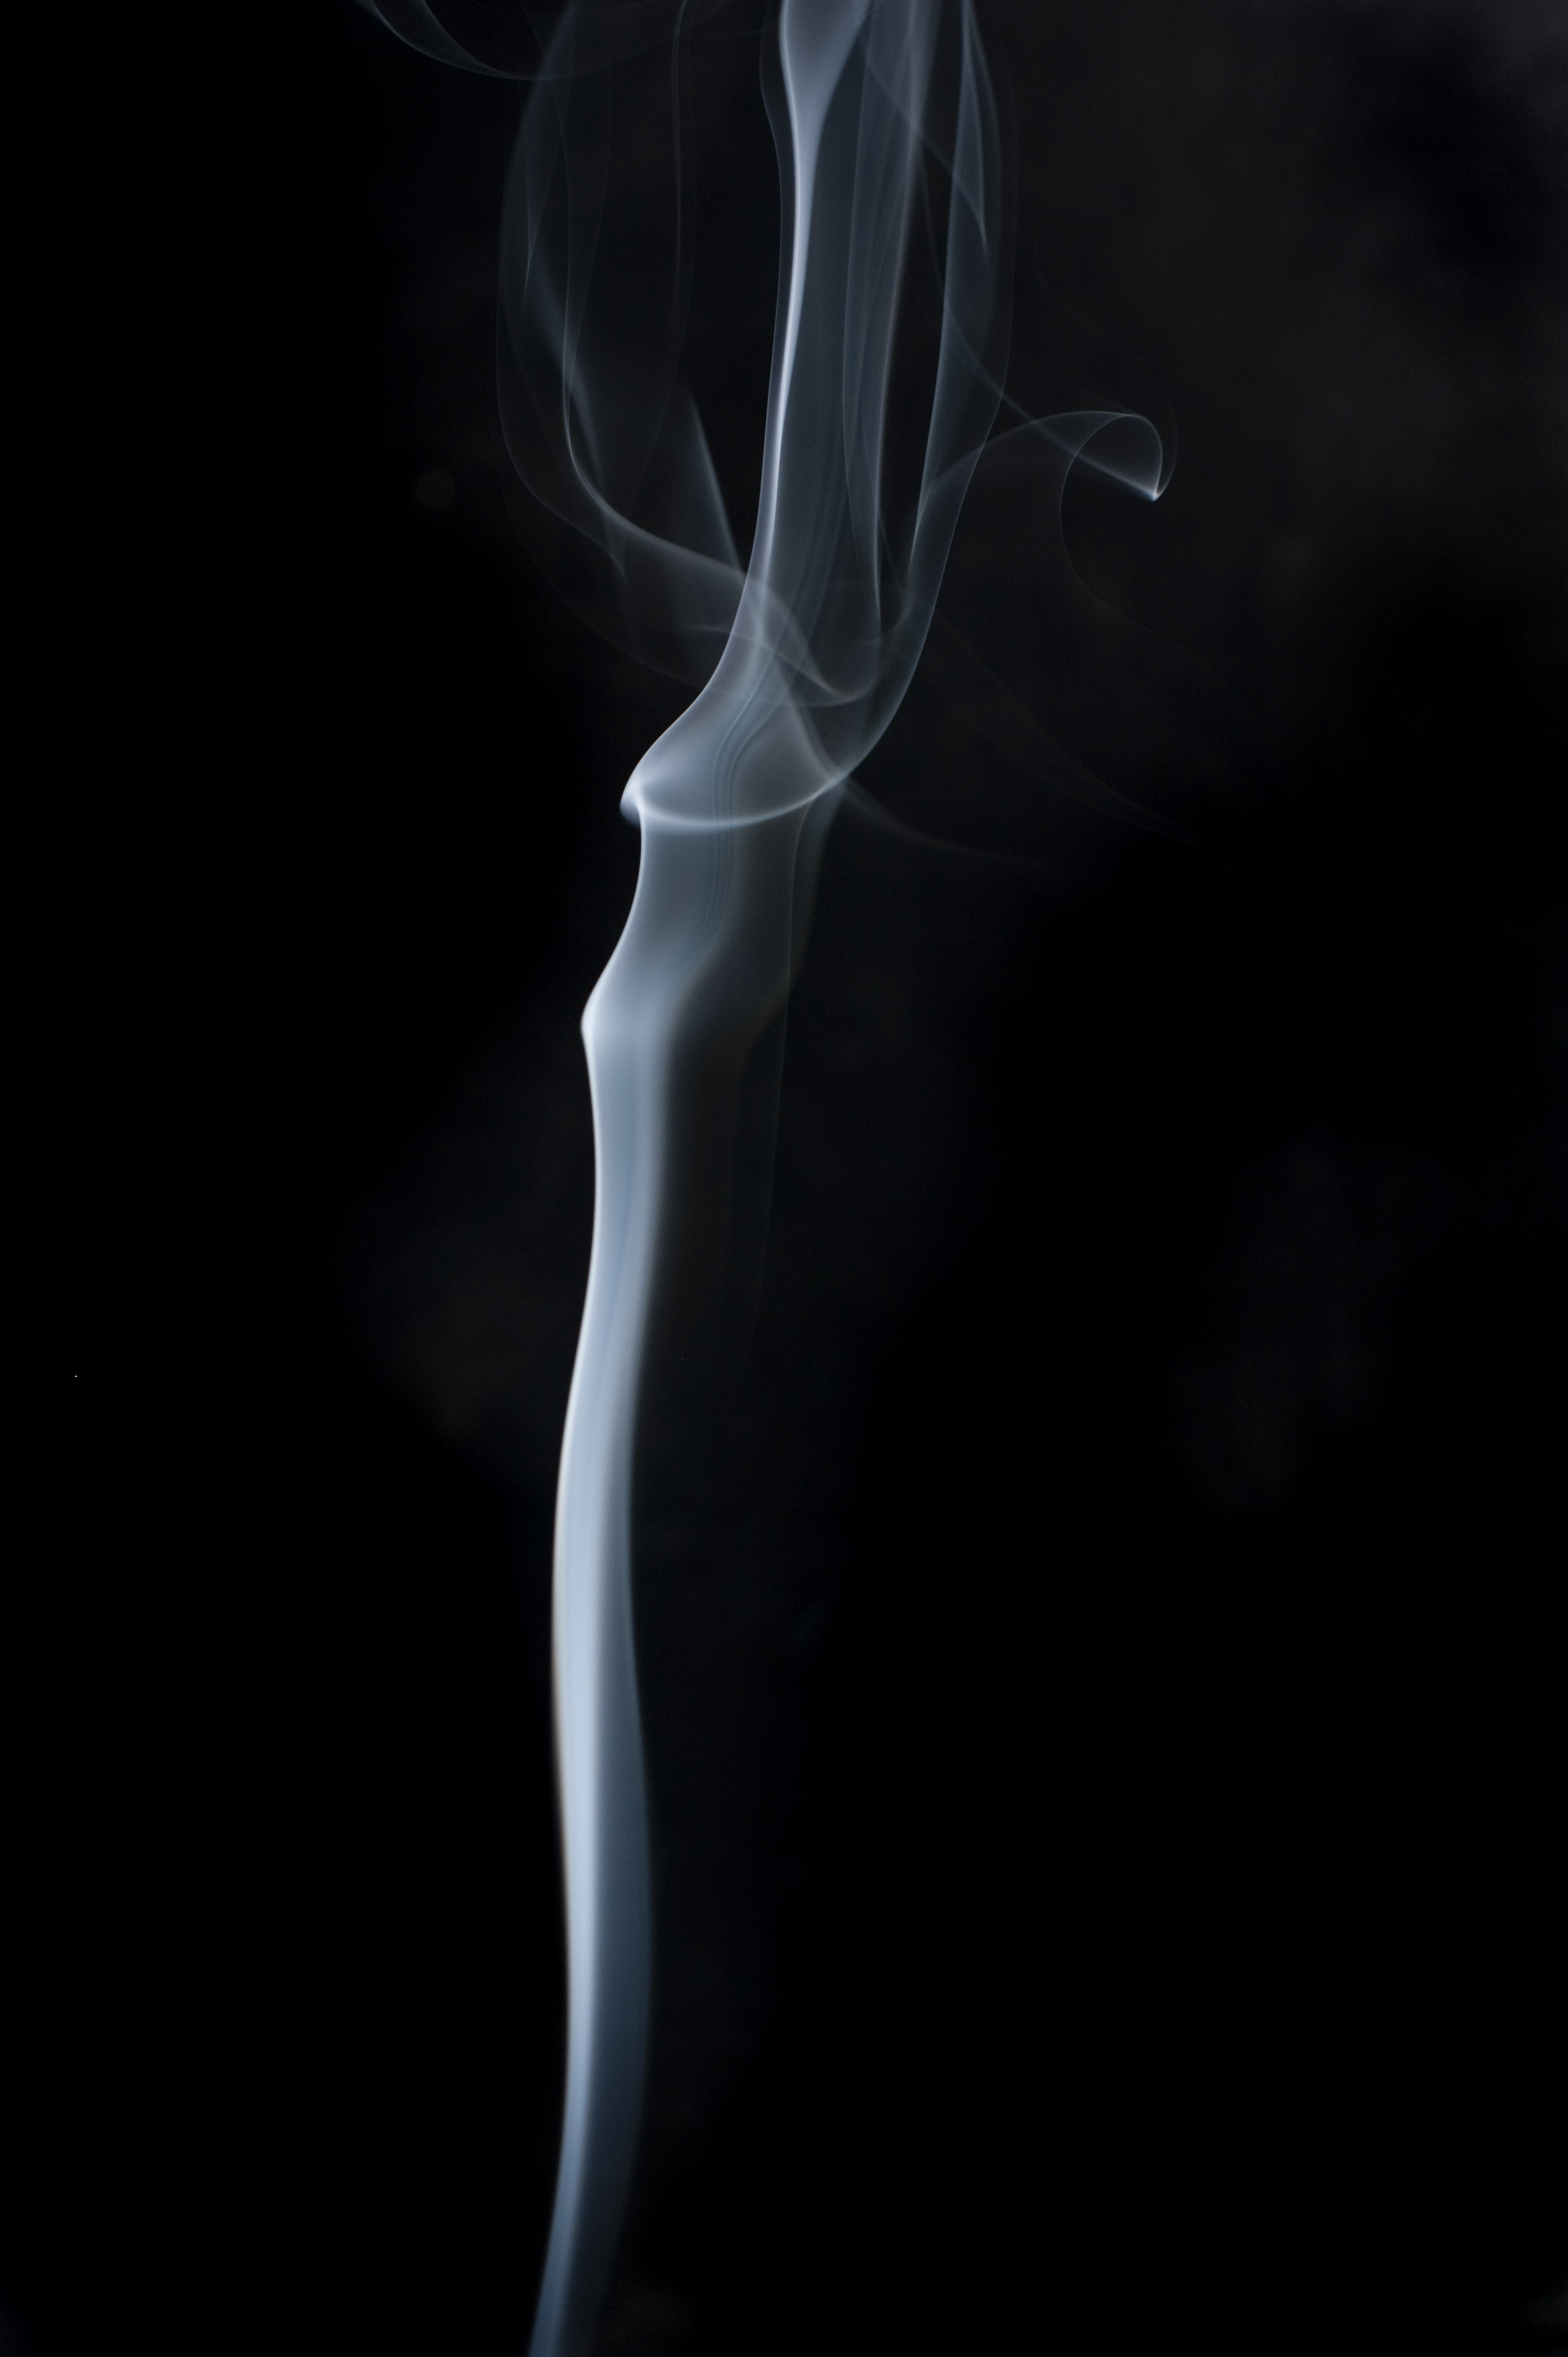 abstract smoke line | Free backgrounds and textures ...